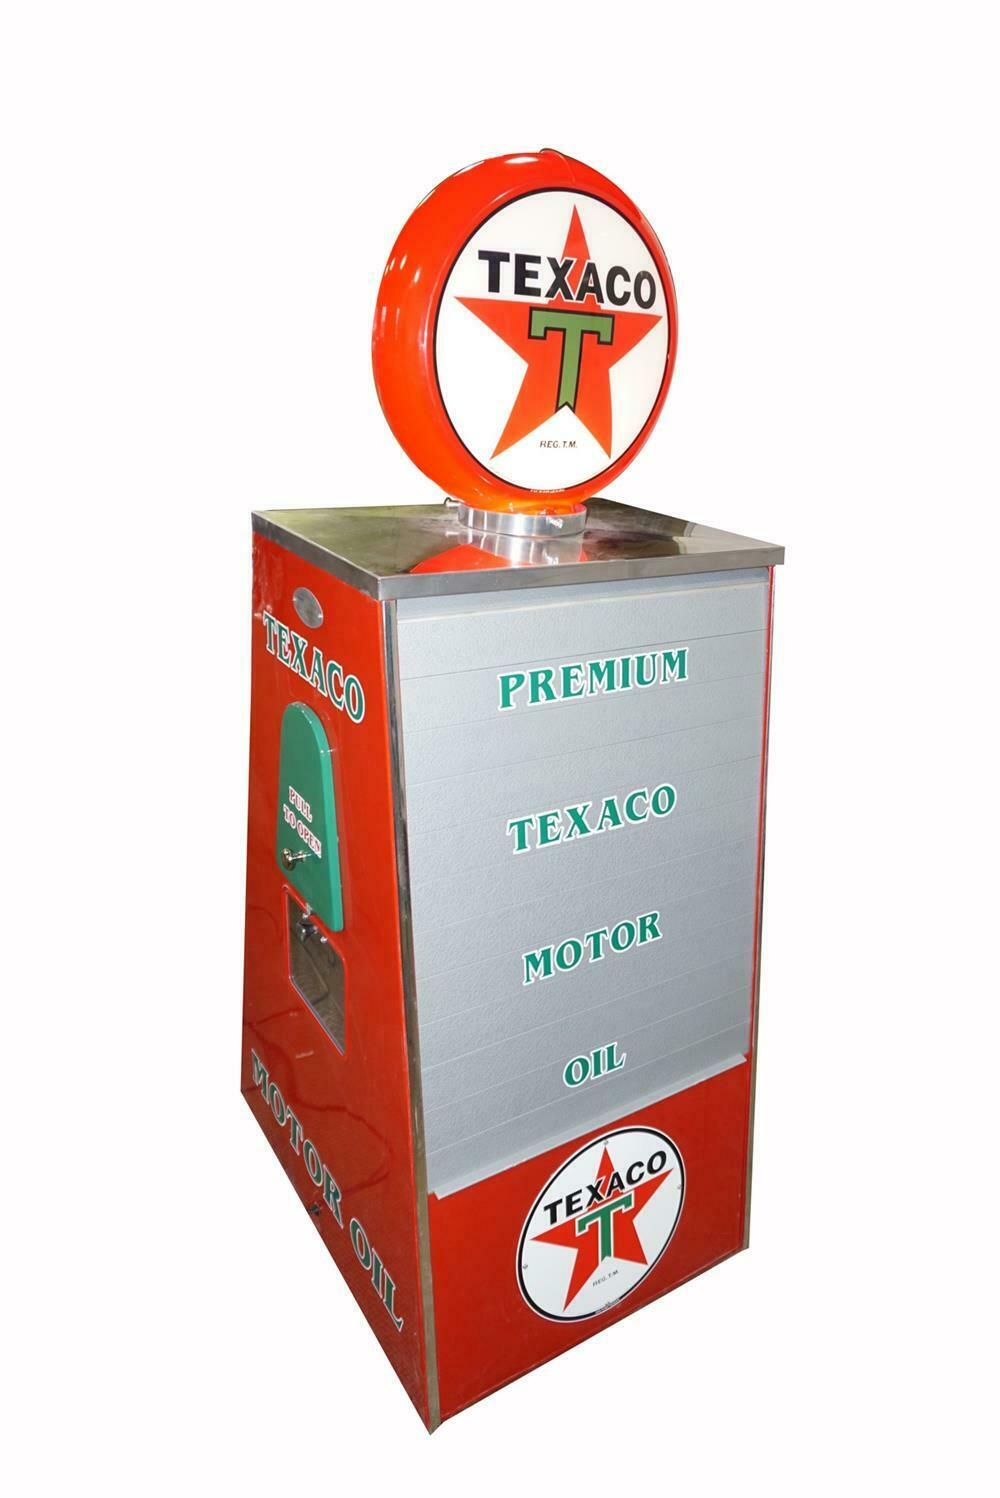 Nicely Red Circa 1940s 50s Texaco Oil Sel Fuel Island Can Display